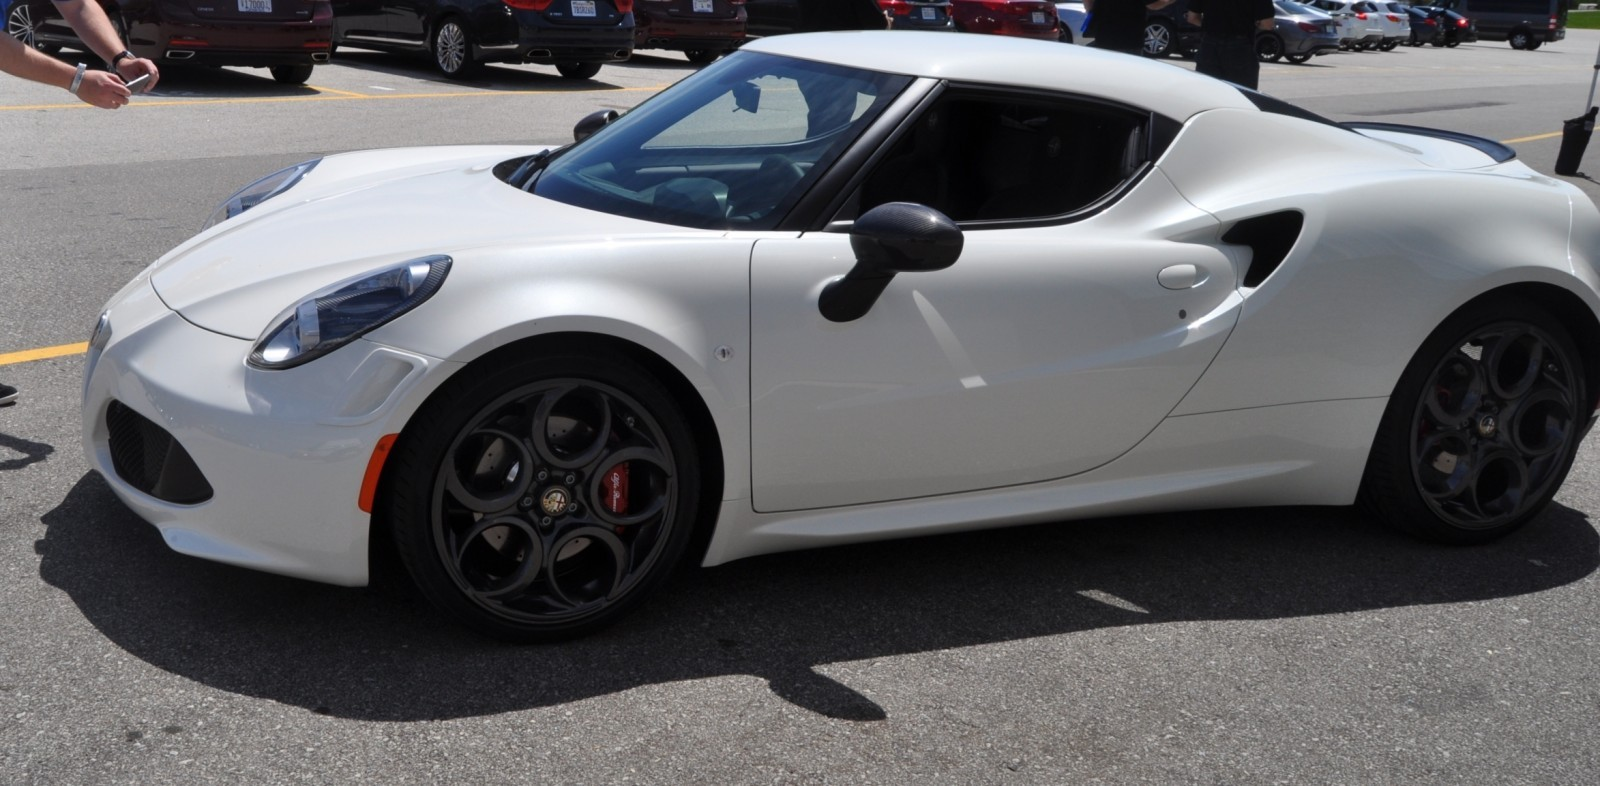 Gorgeous 2015 Alfa-Romeo 4C Revealed in Full USA Trim + New Headlights! 14